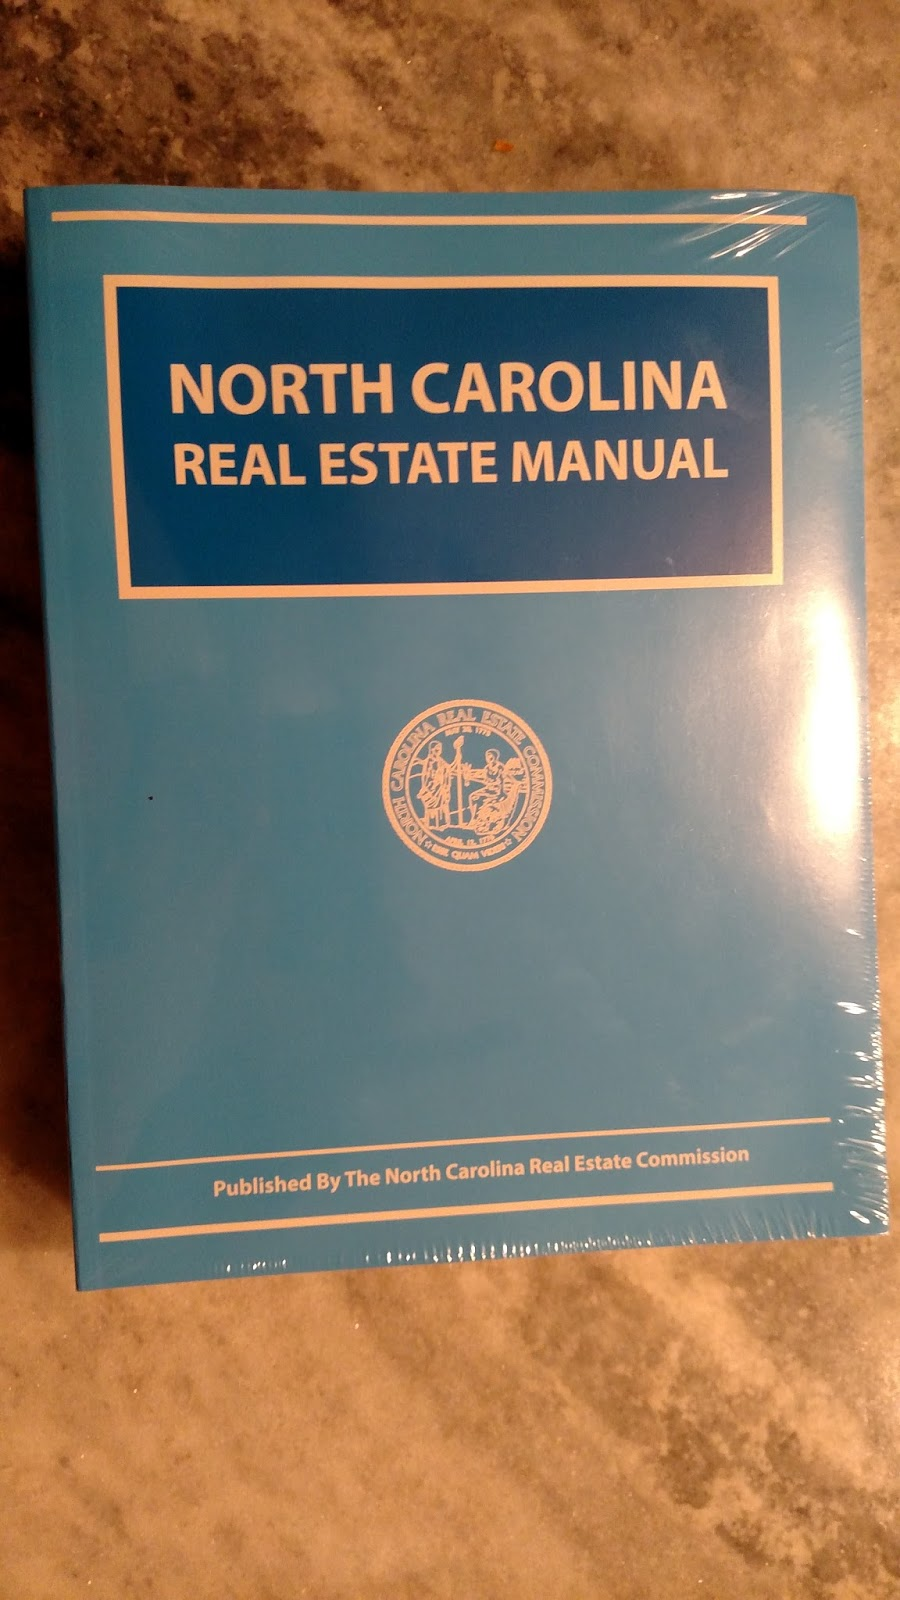 ron climer mountain messages post license real estate course in rh rondclimer blogspot com north carolina real estate manual north carolina real estate manual online